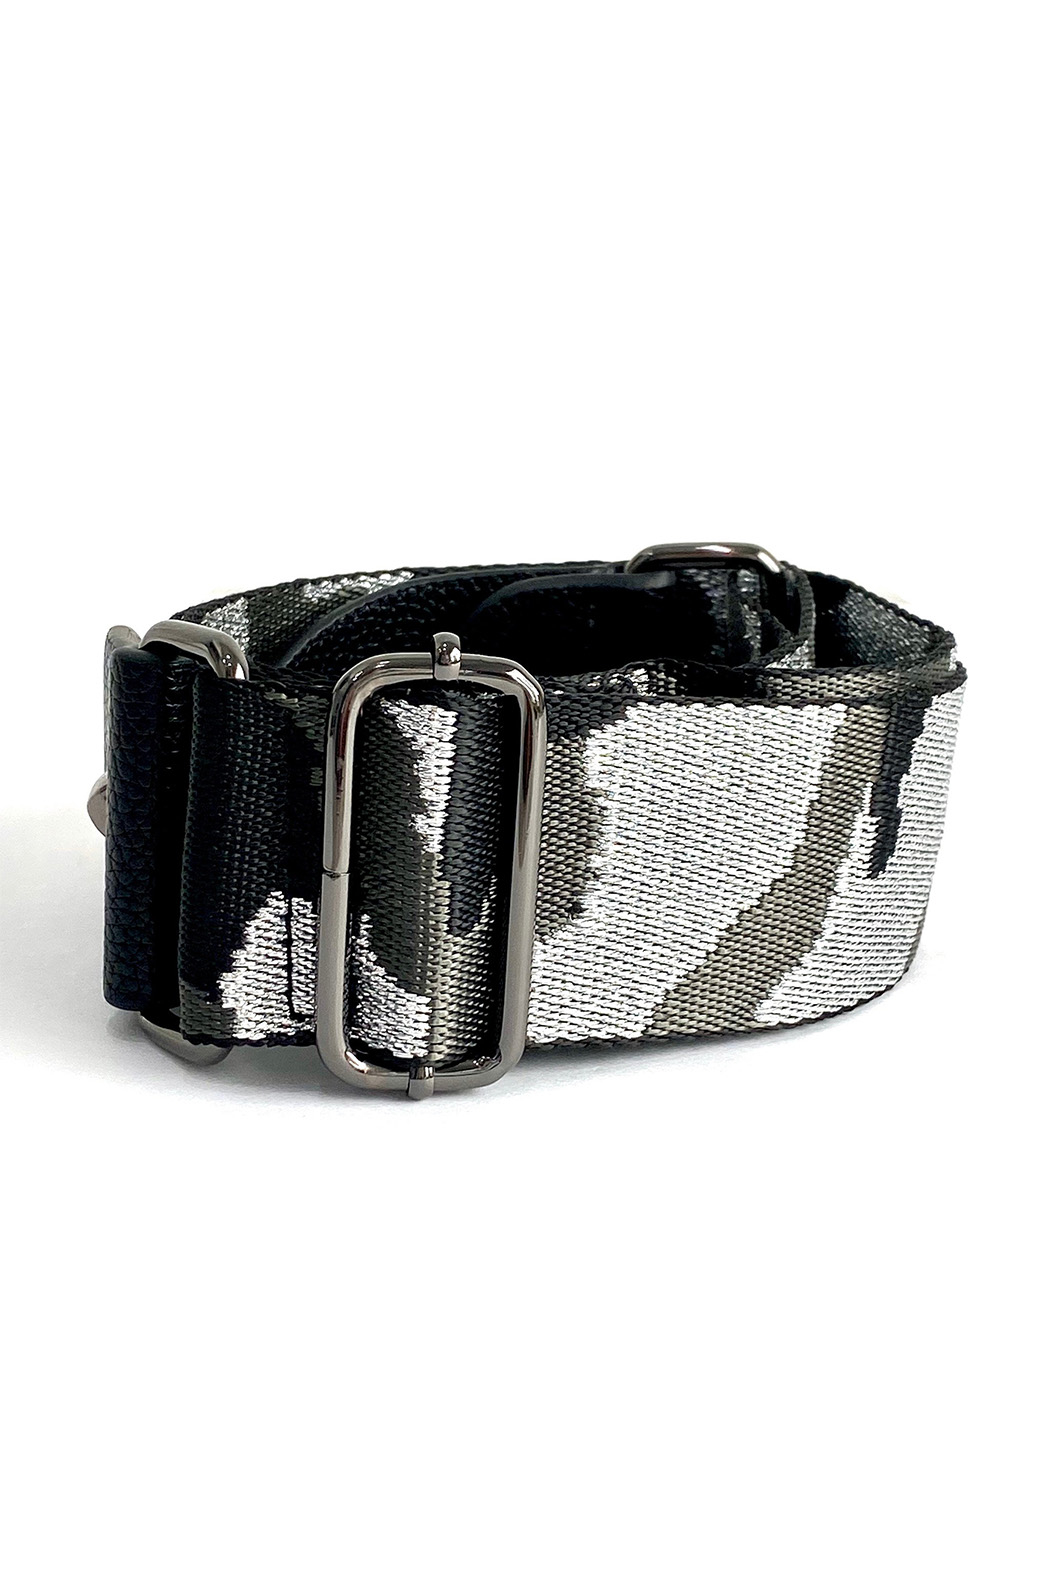 be clear handbags Metallic Camo Strap - Main Image